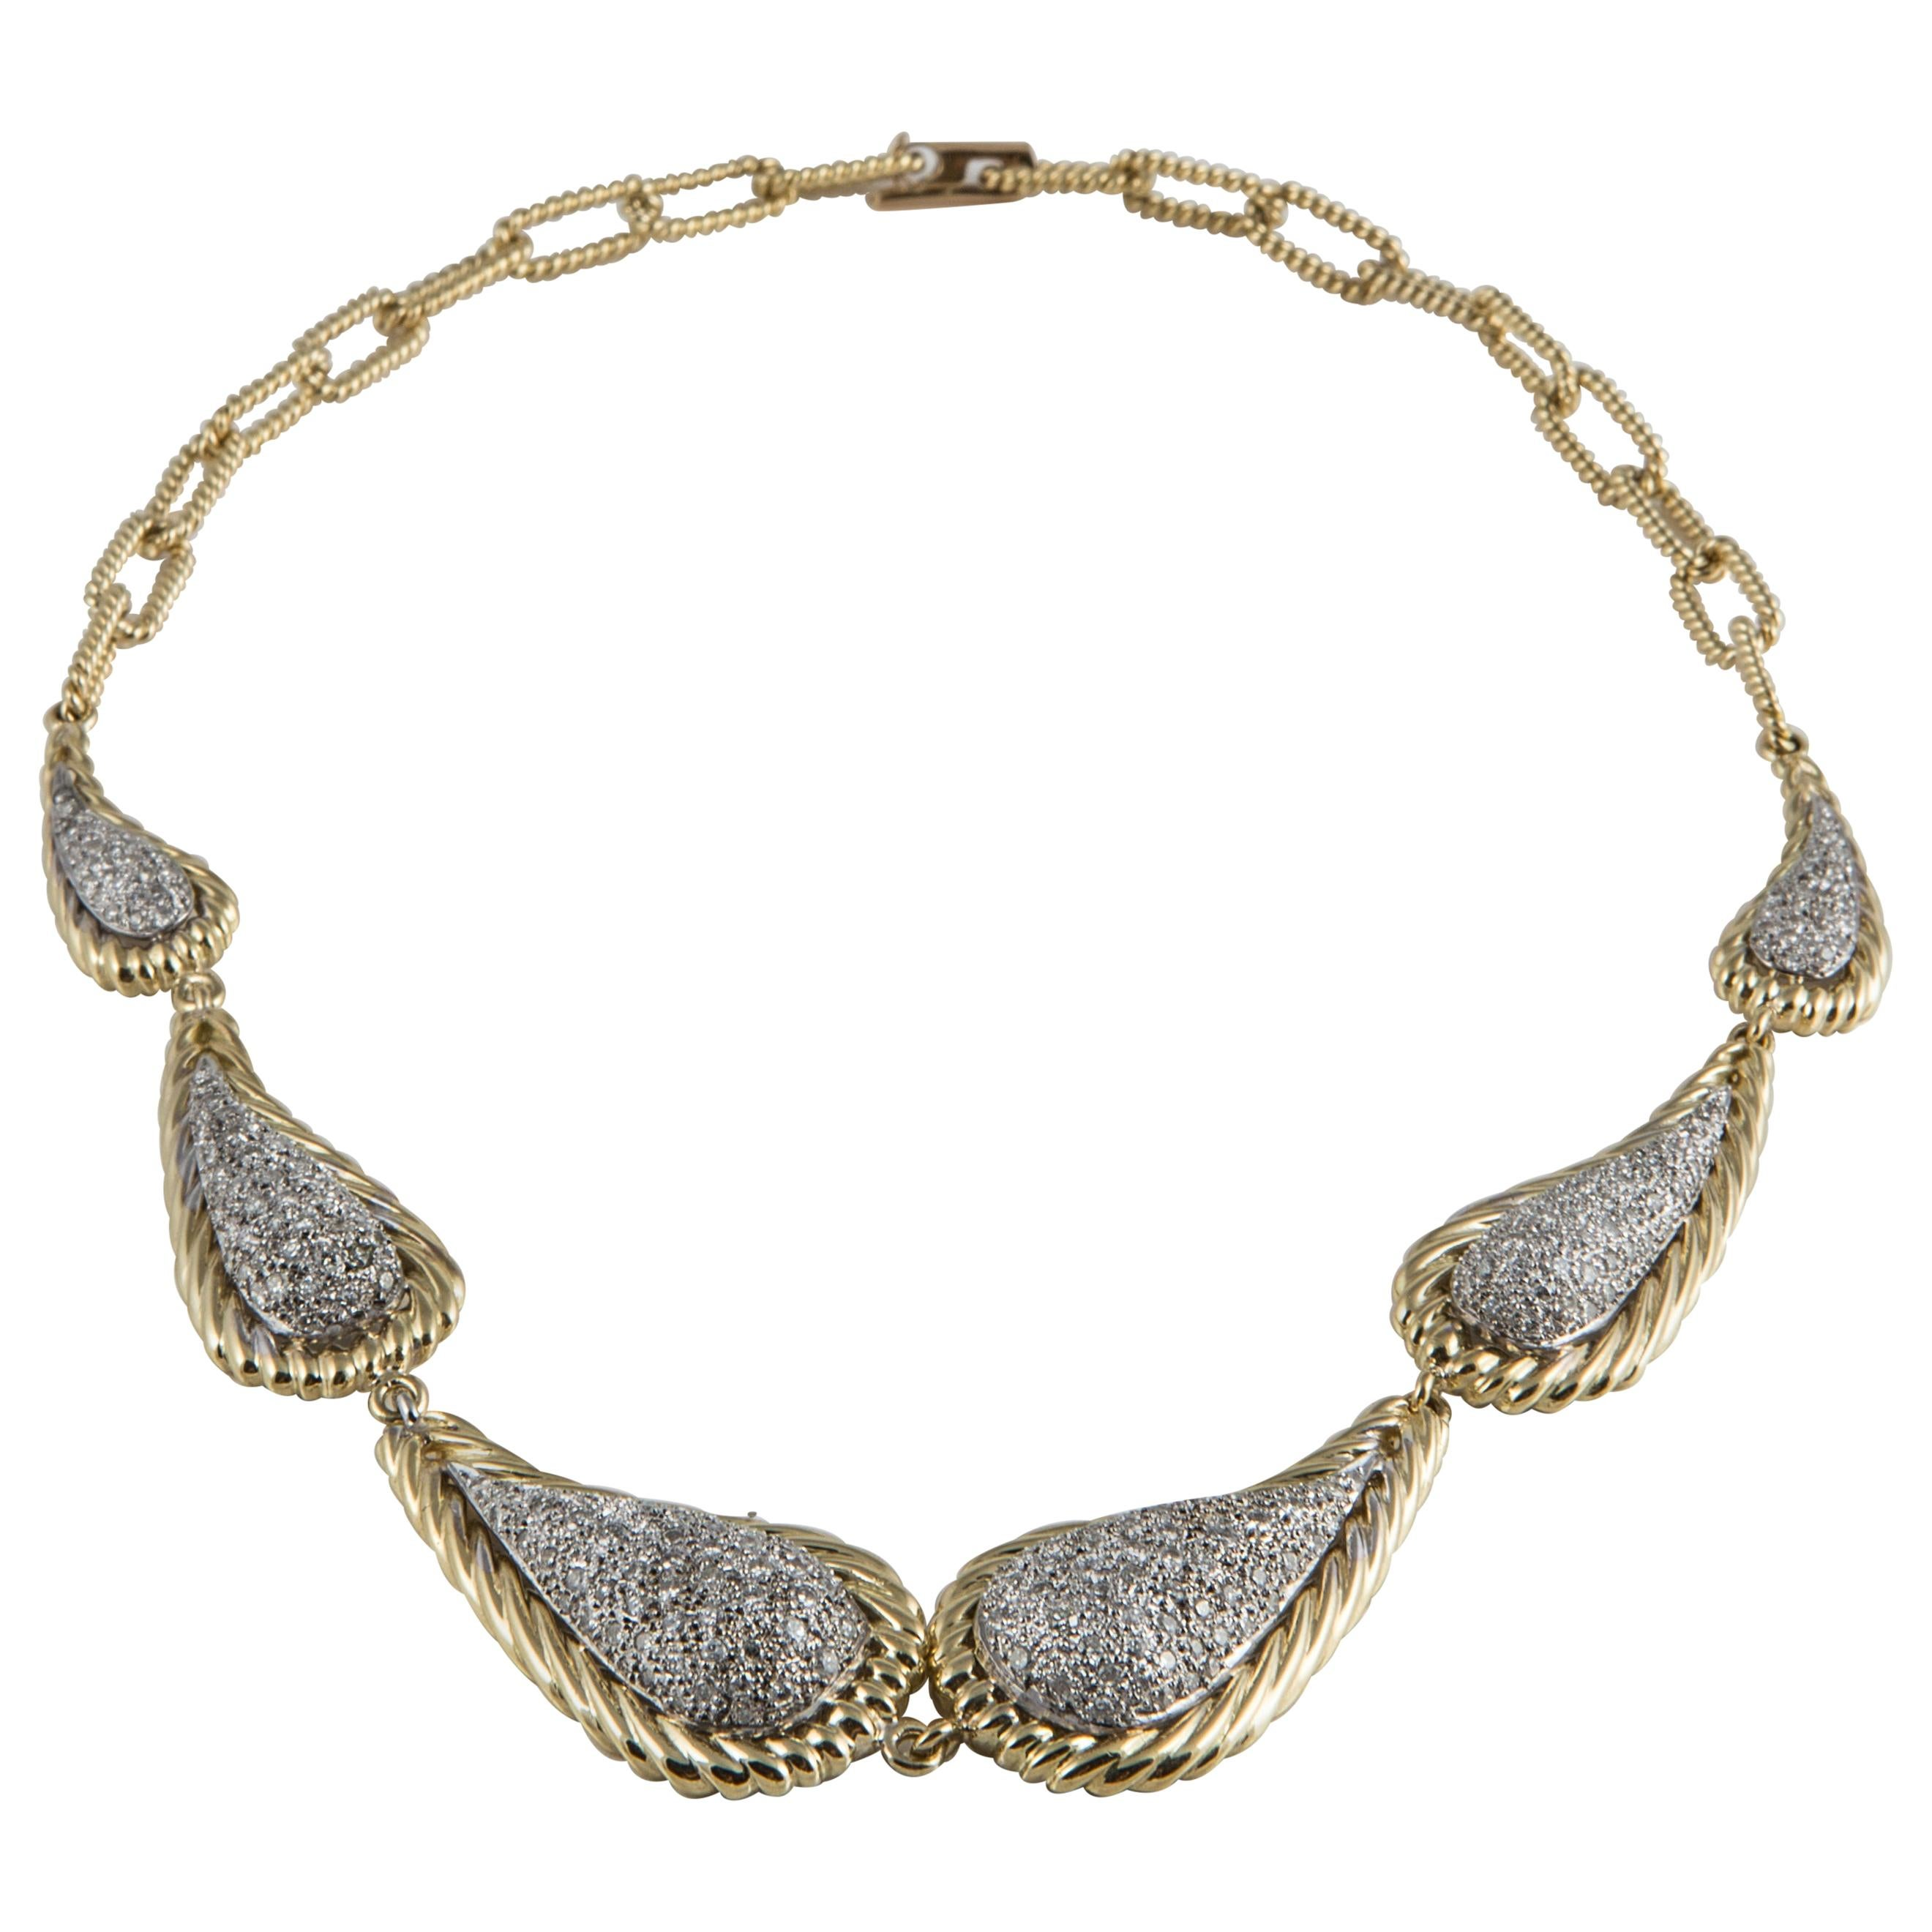 Diamond Plaque Necklace in 18K Gold